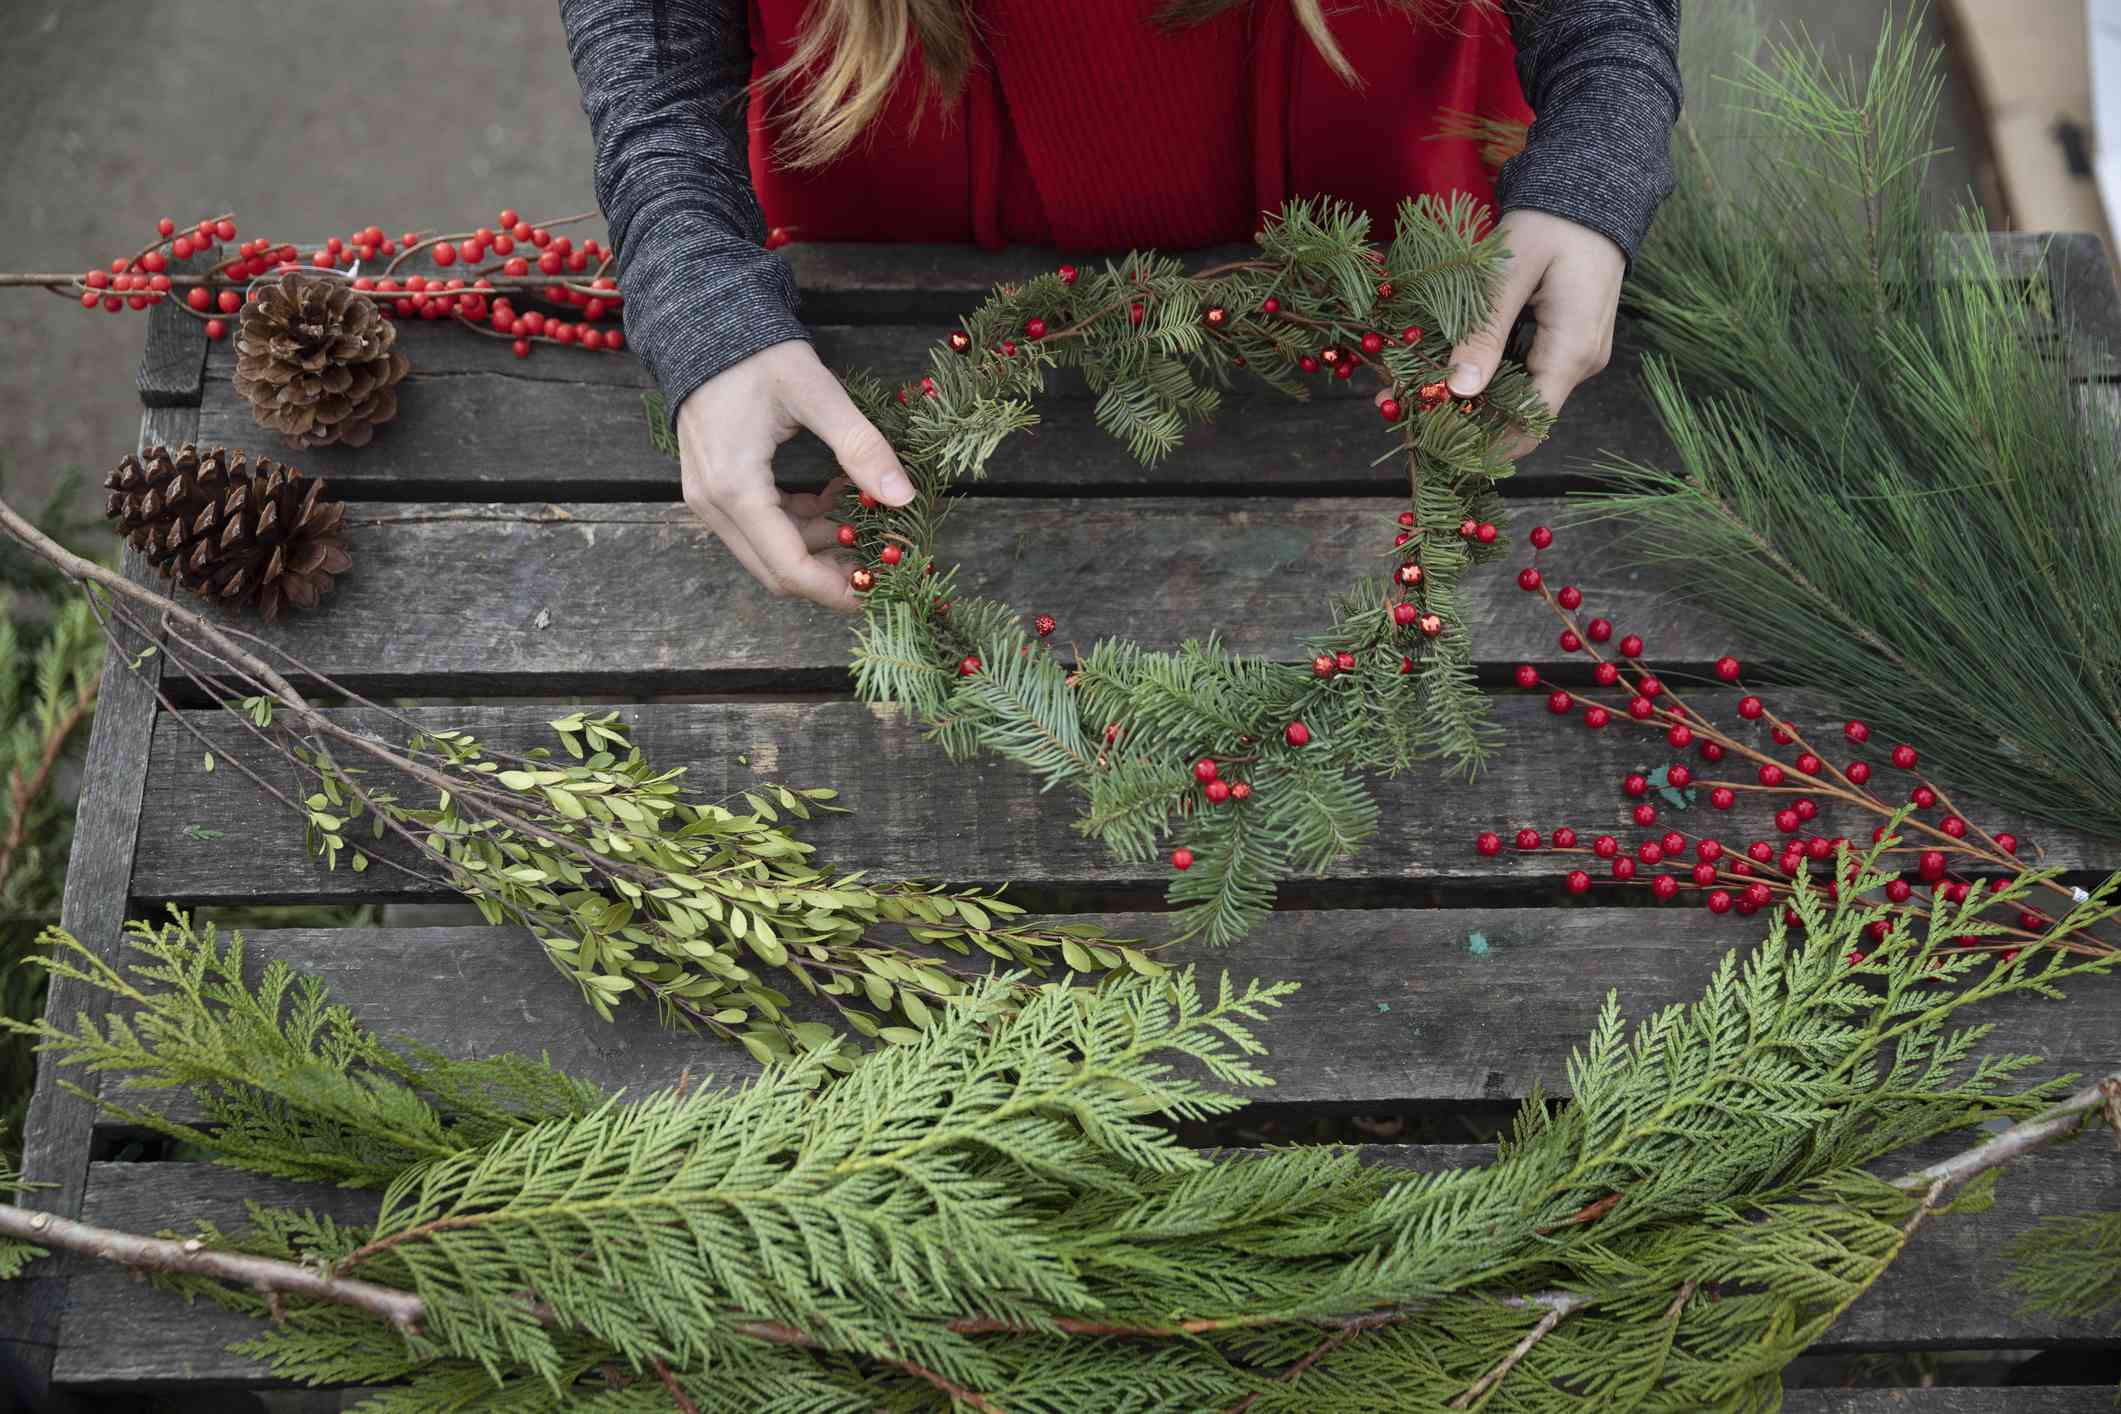 Woman making Yule wreath with berries and branches